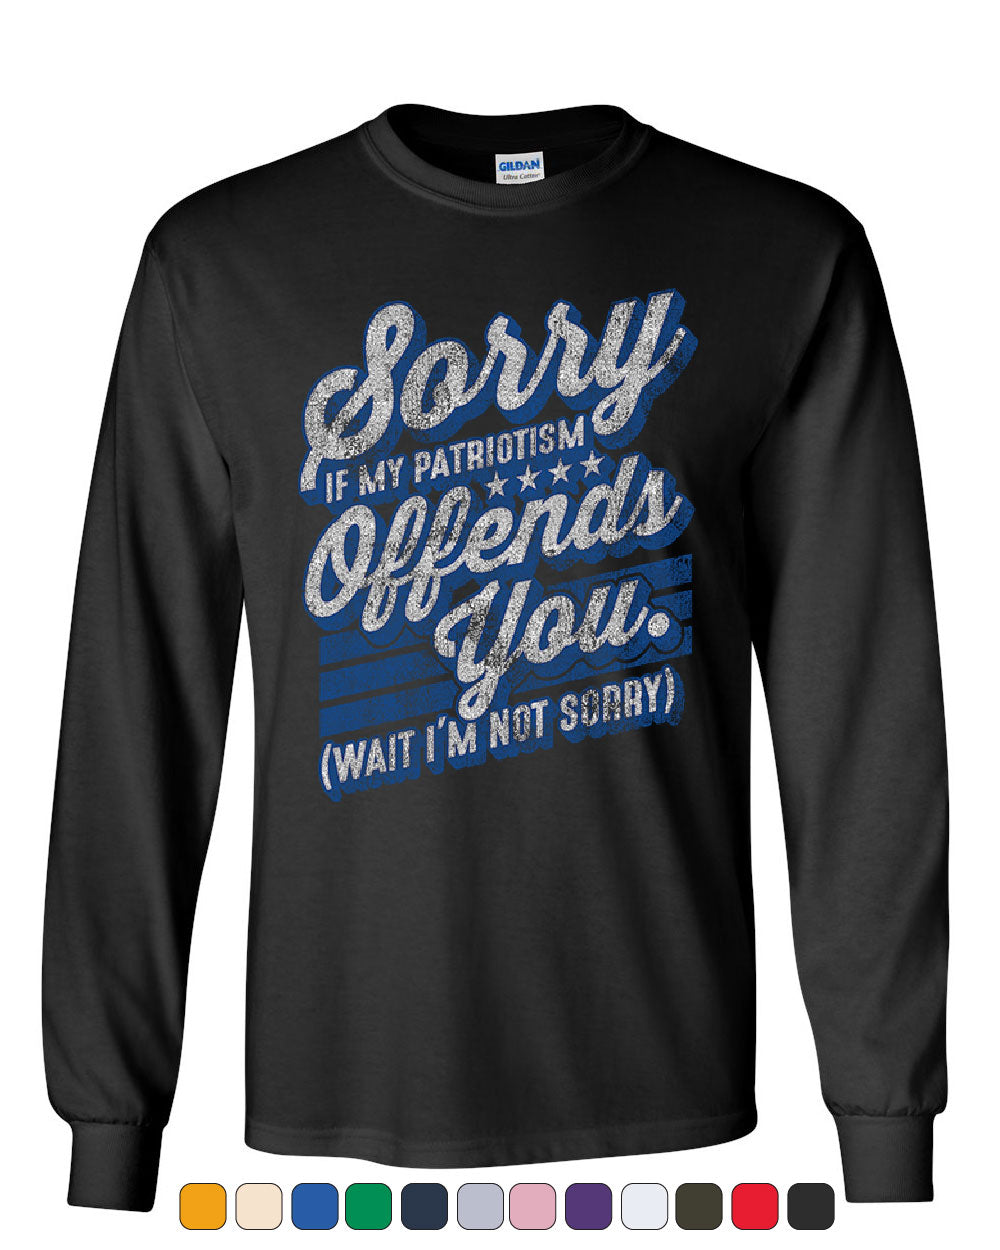 34799f8f59b27 Sorry if My Patriotism Offends You Long Sleeve T-Shirt American Patriot USA  Tee